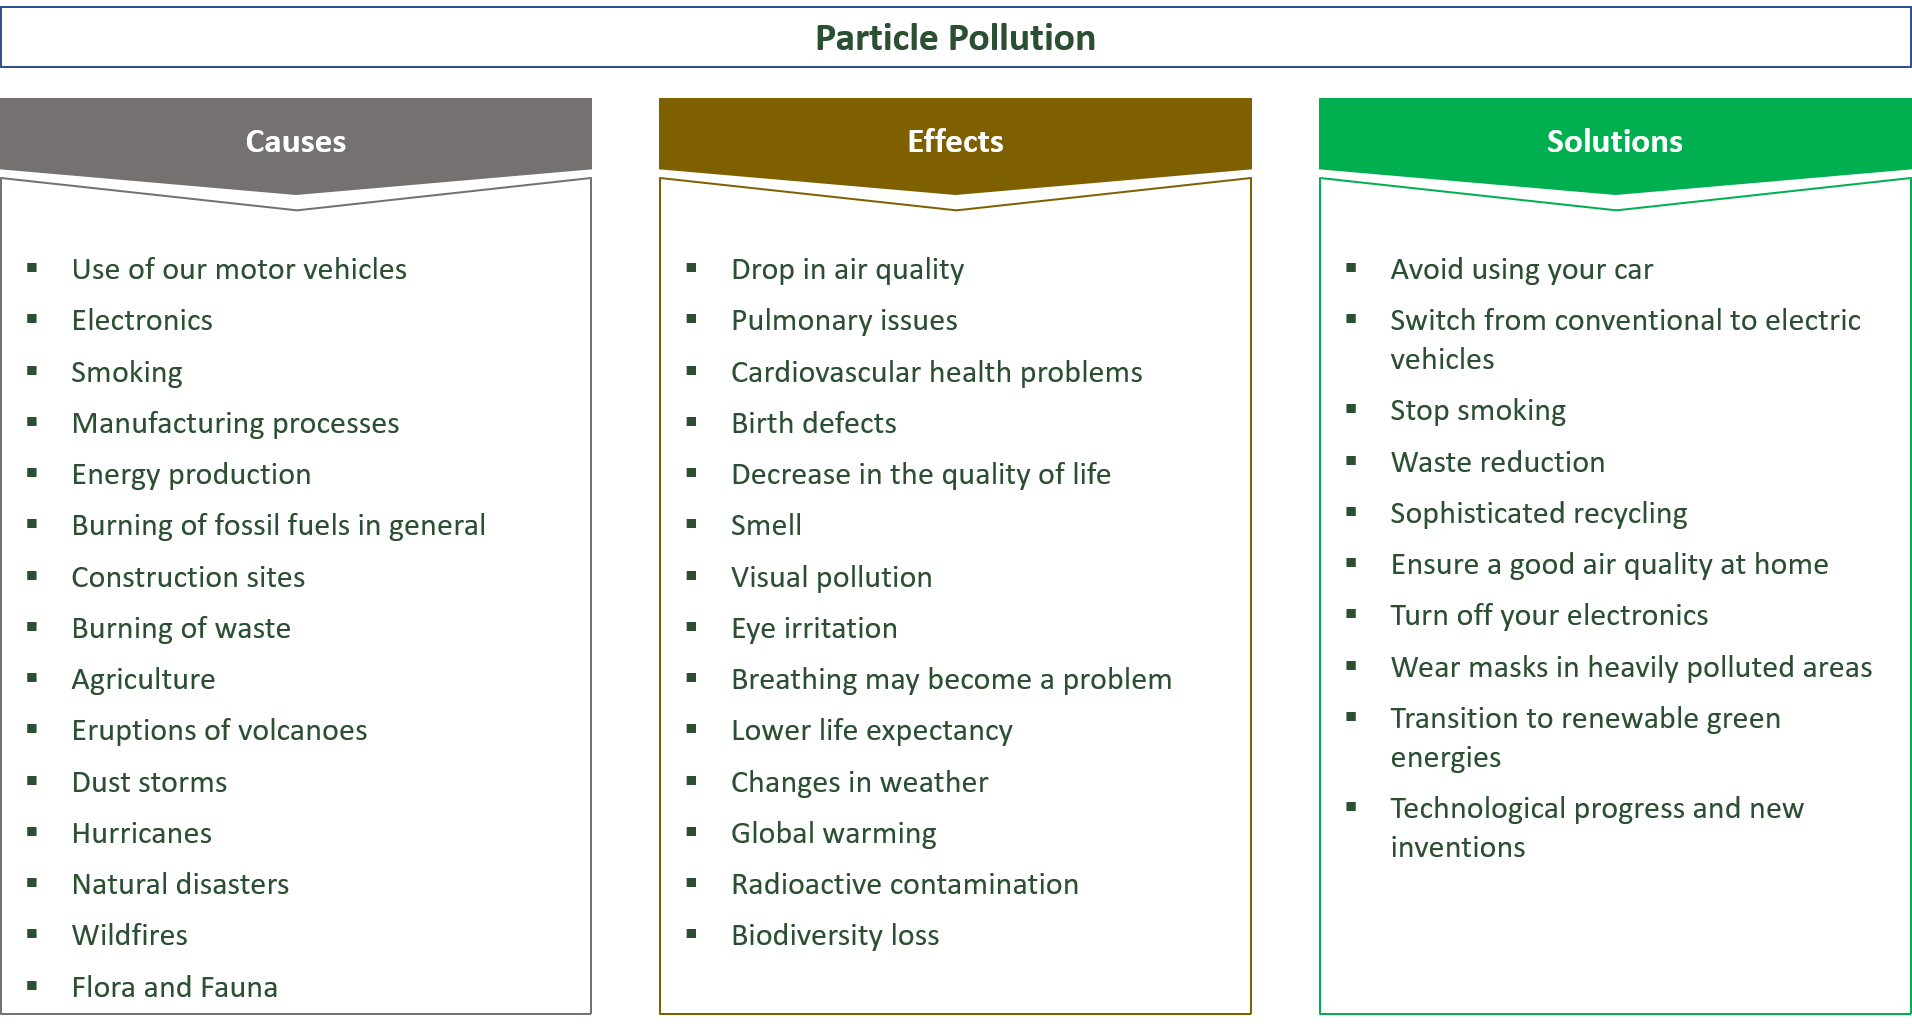 causes, effects and solutions for particulate pollution